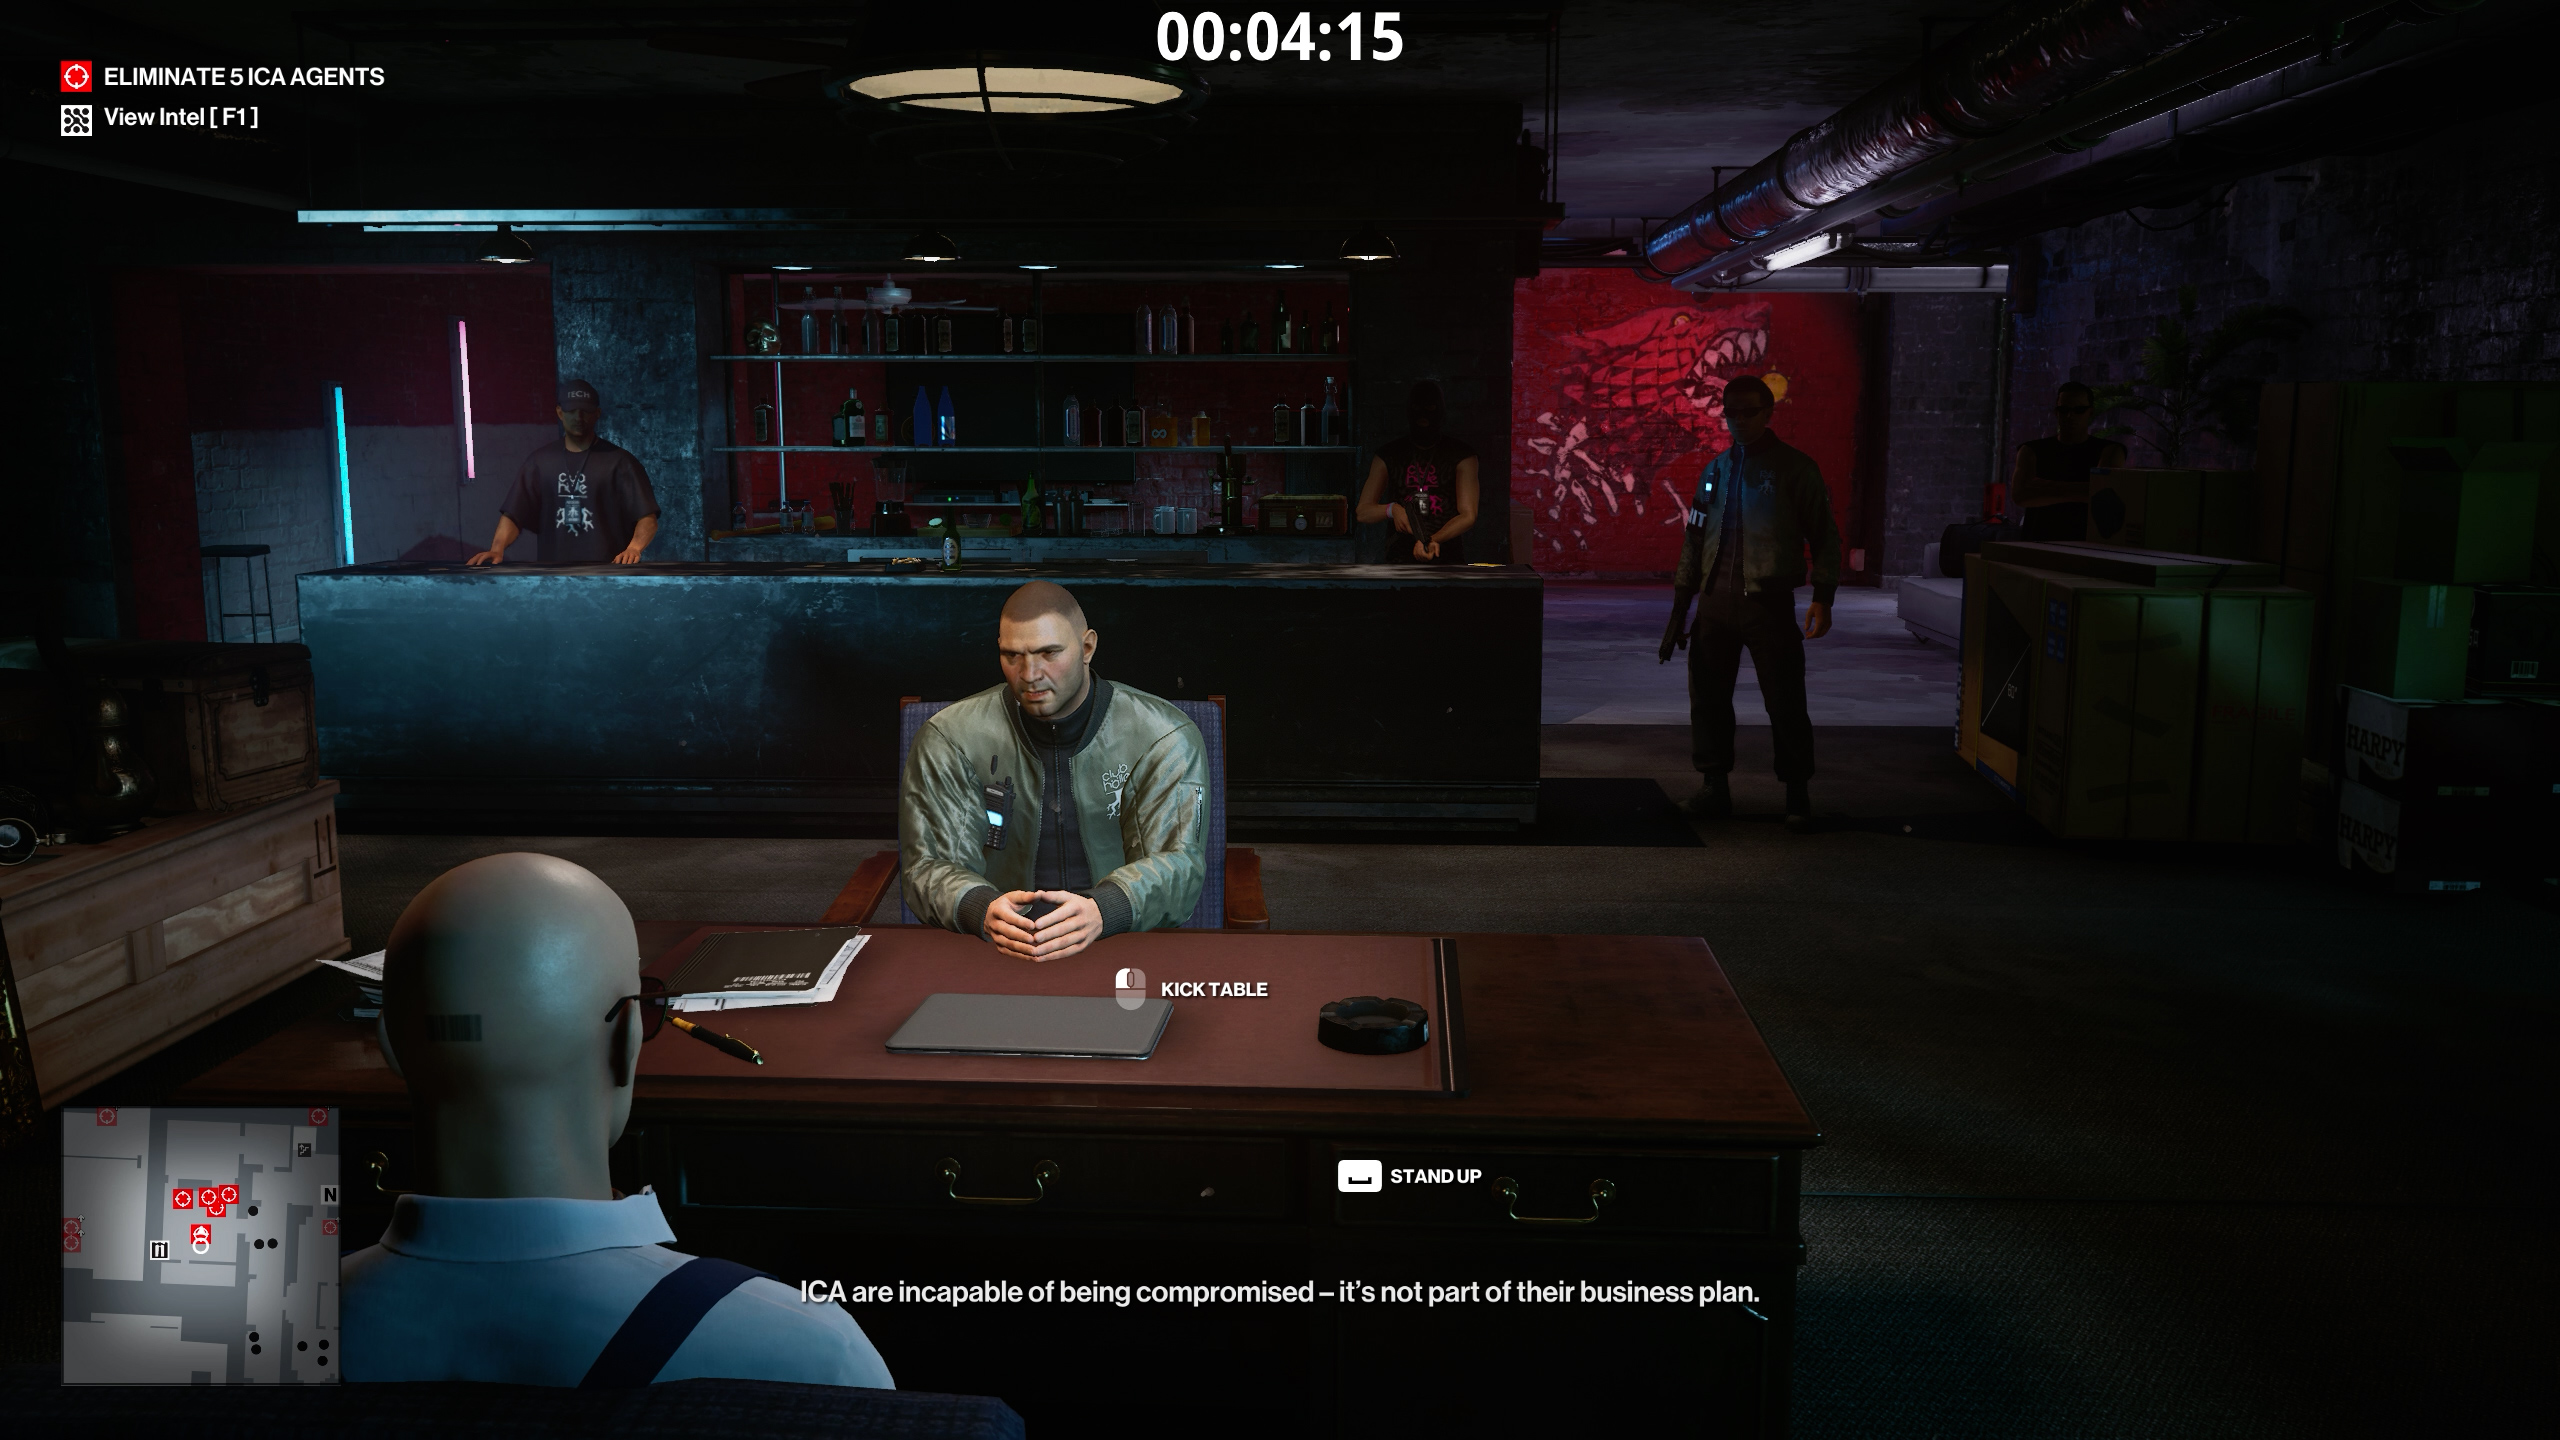 hitman 3 - there was a fire fight - wait for five agents to arrive